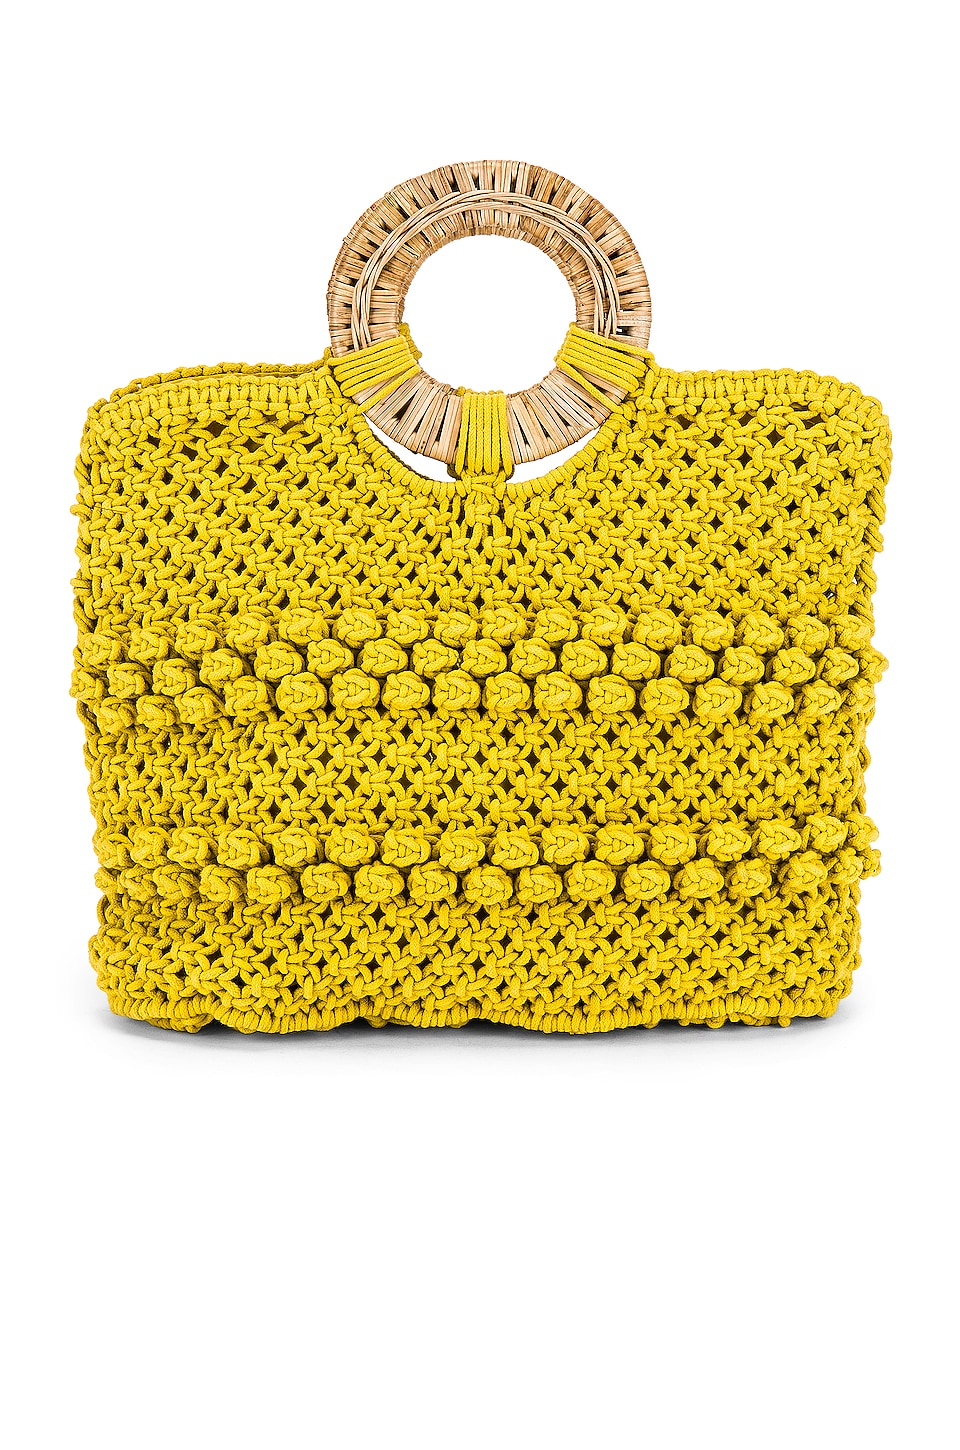 Cleobella Reed Tote in Lemon